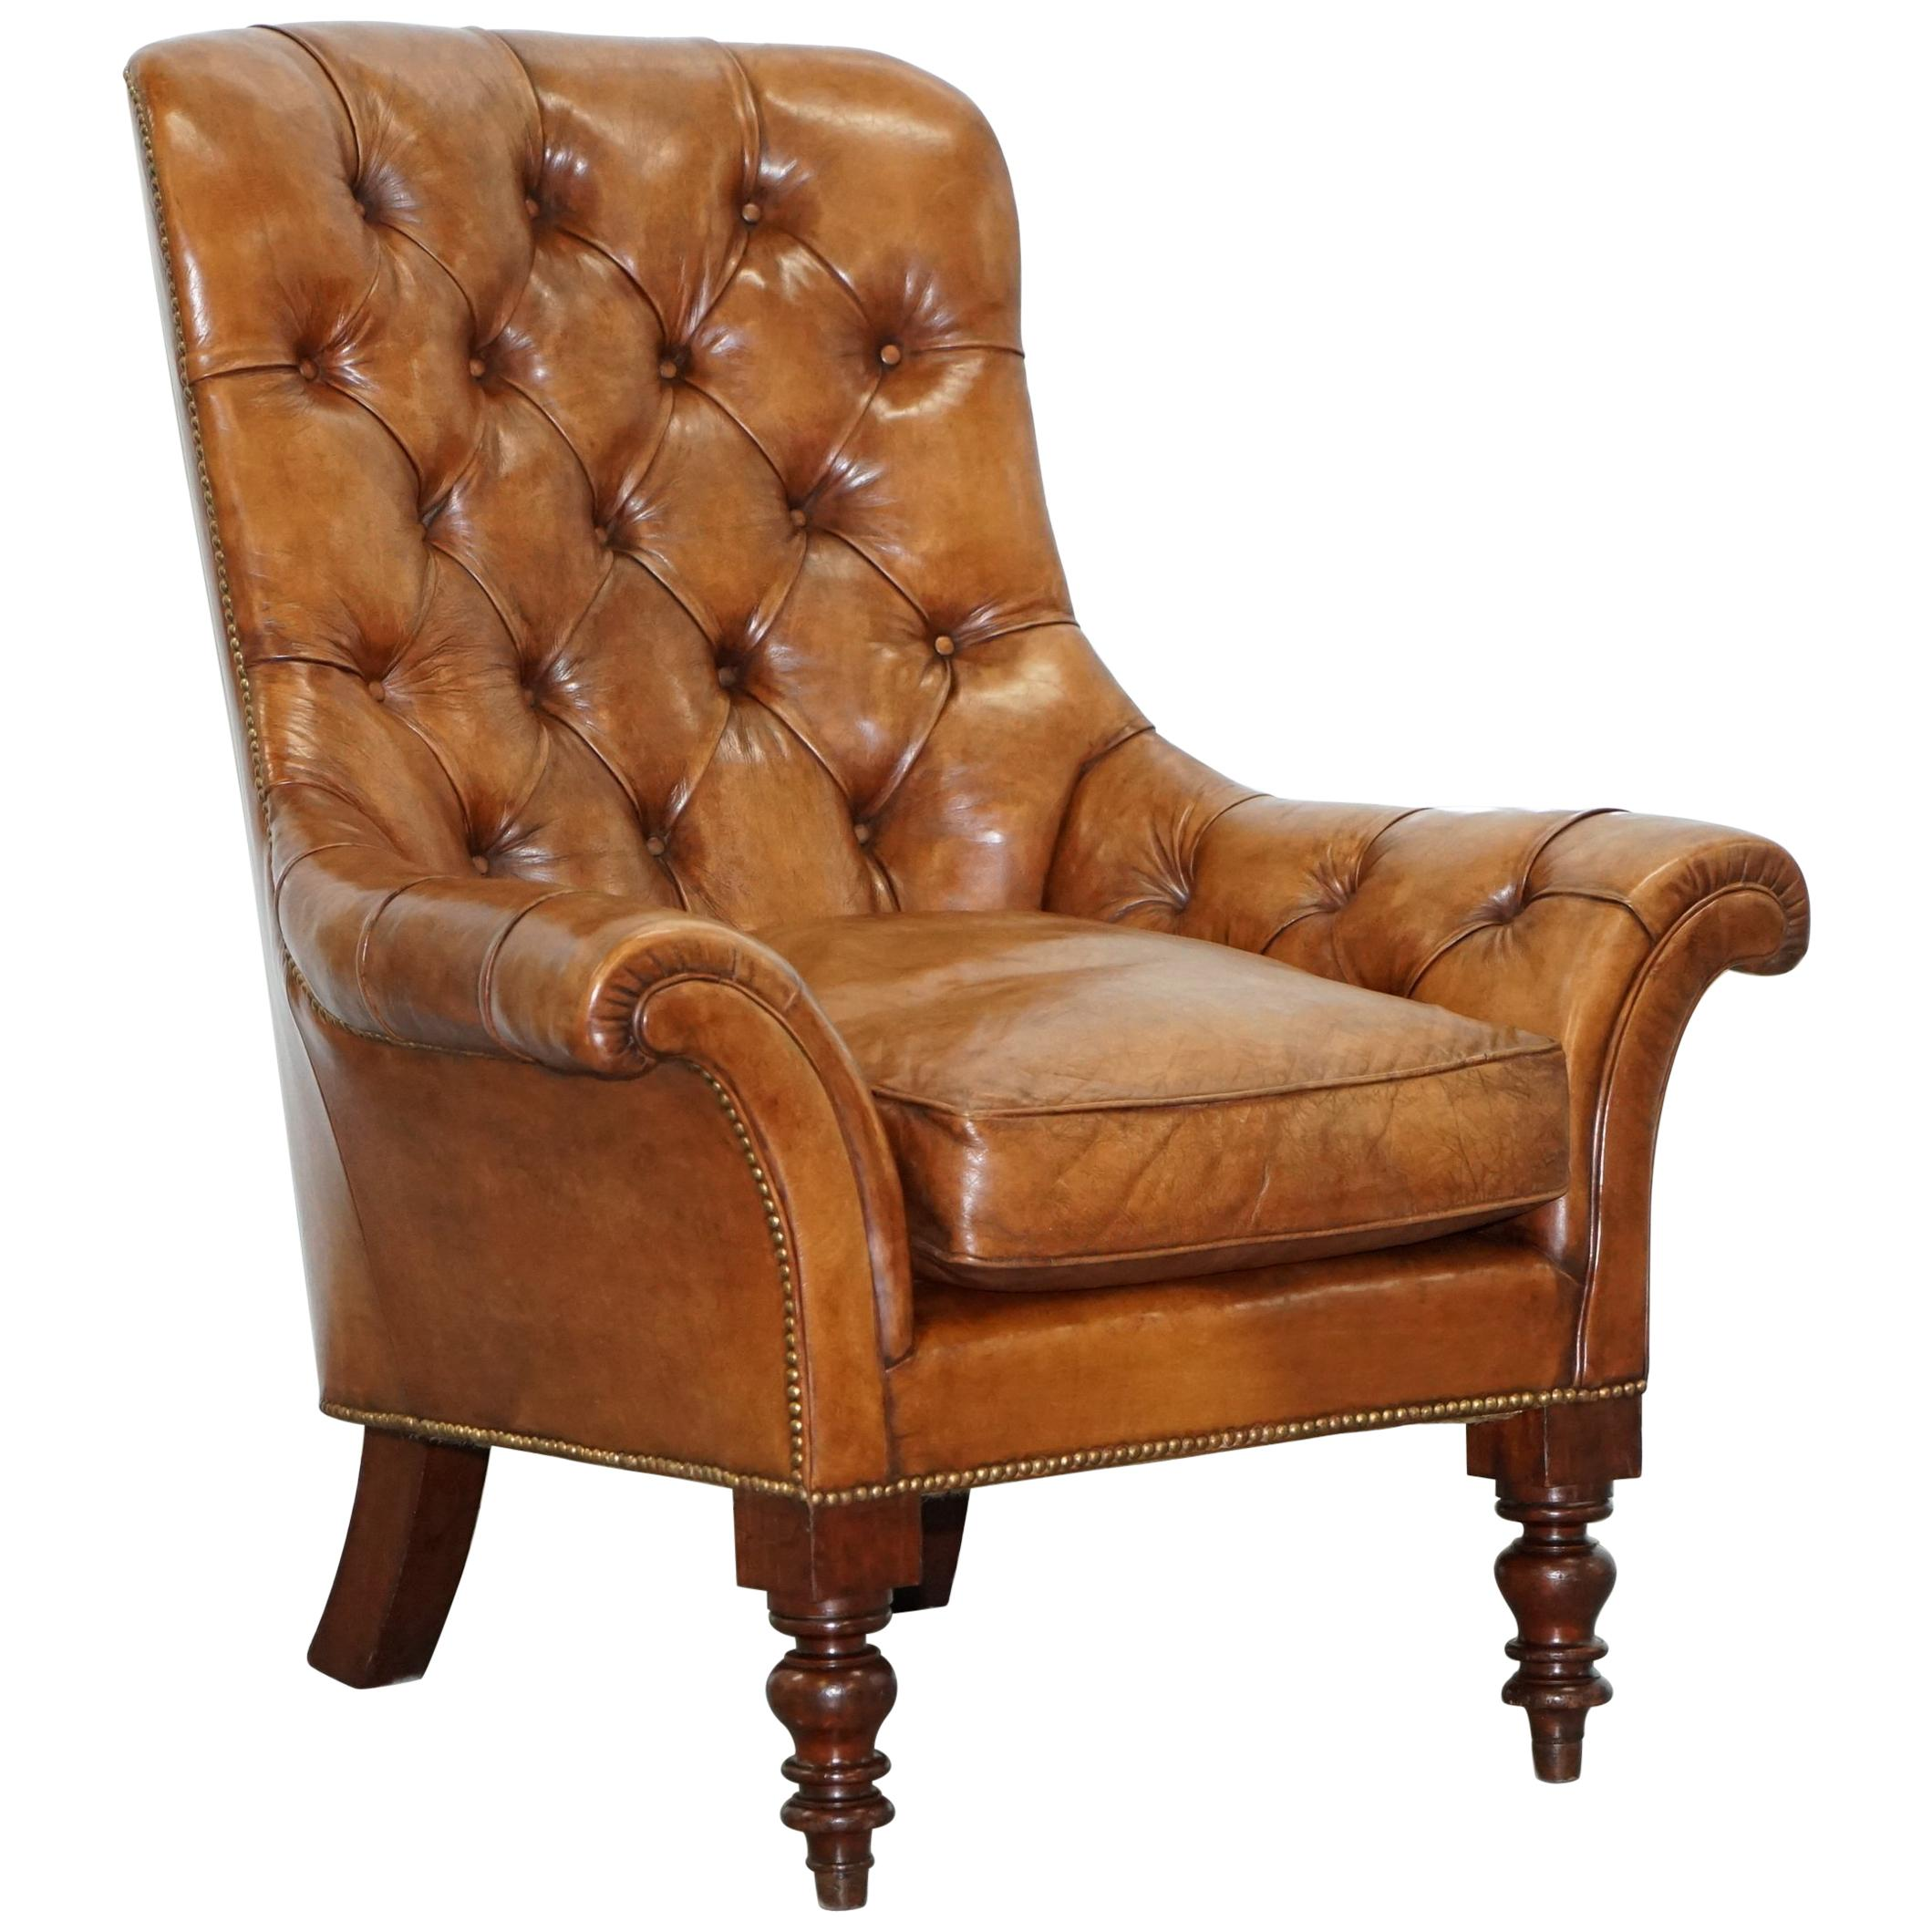 Huge Restored Chesterfield Aged Brown Leather Victorian Library Reading  Armchair